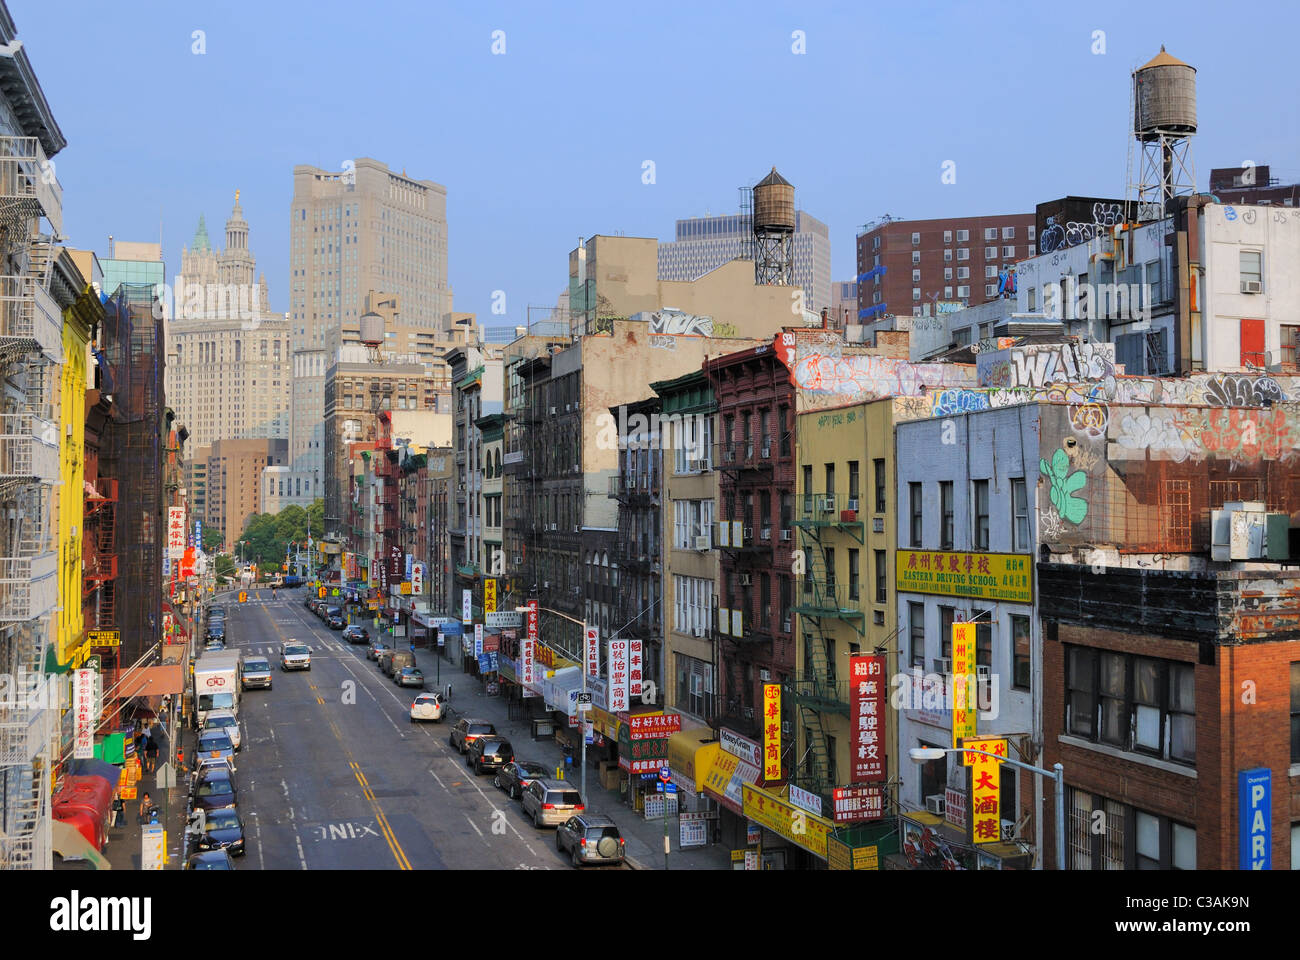 View chinatown in new york stockfotos view chinatown in new york bilder alamy - New york wohnungen ...